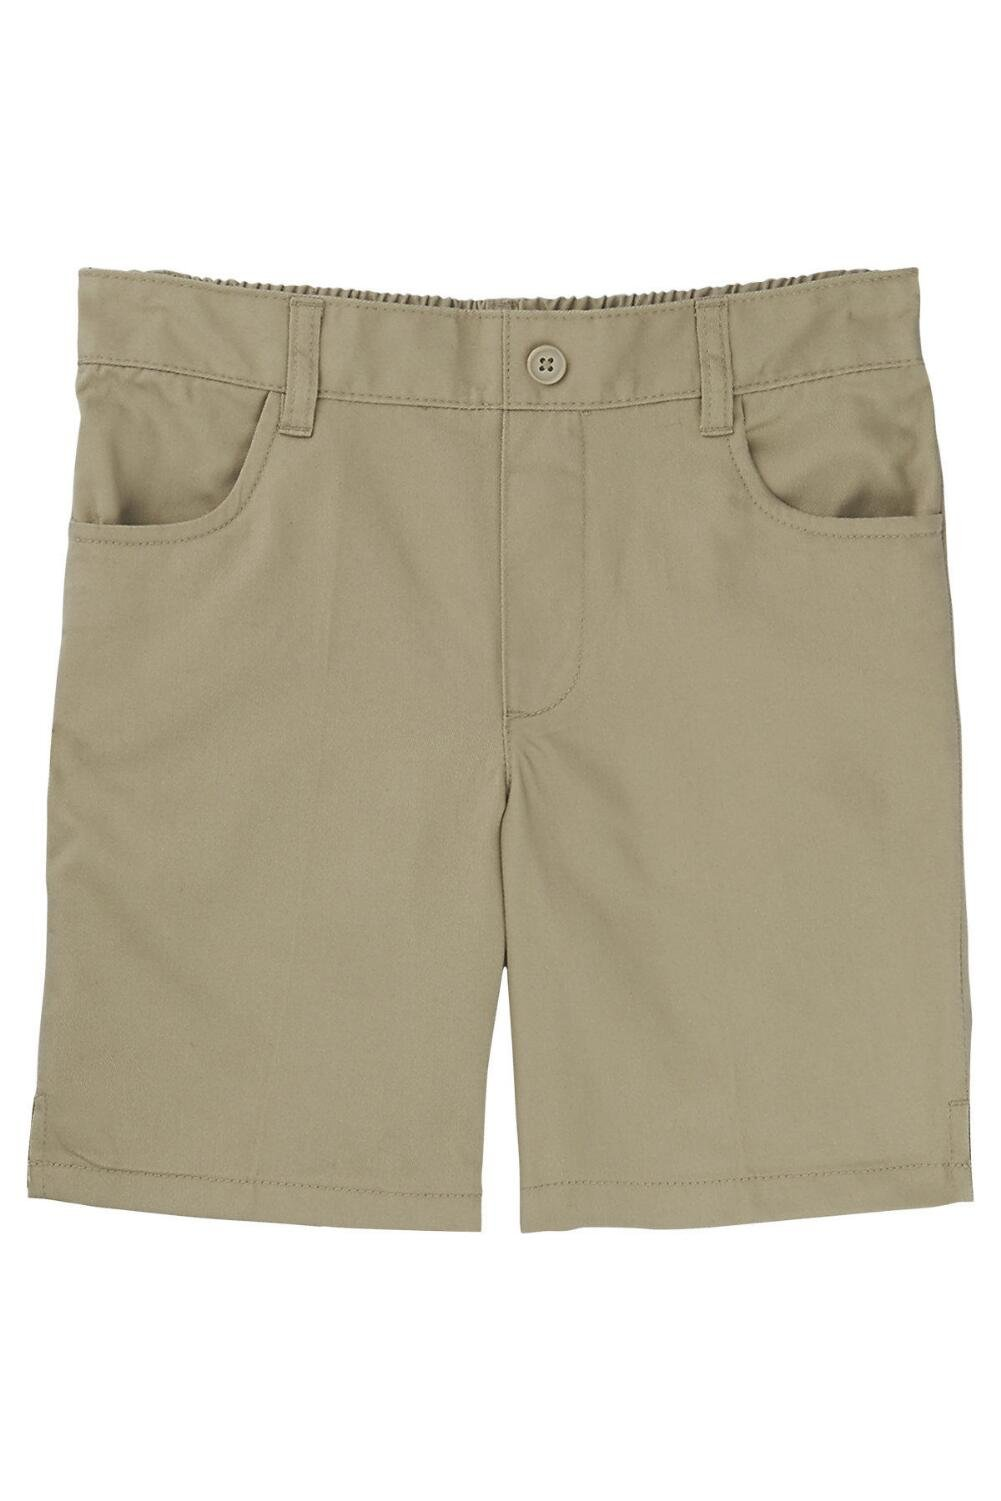 French Toast Big Girls' Pull-on Short, Khaki, 12